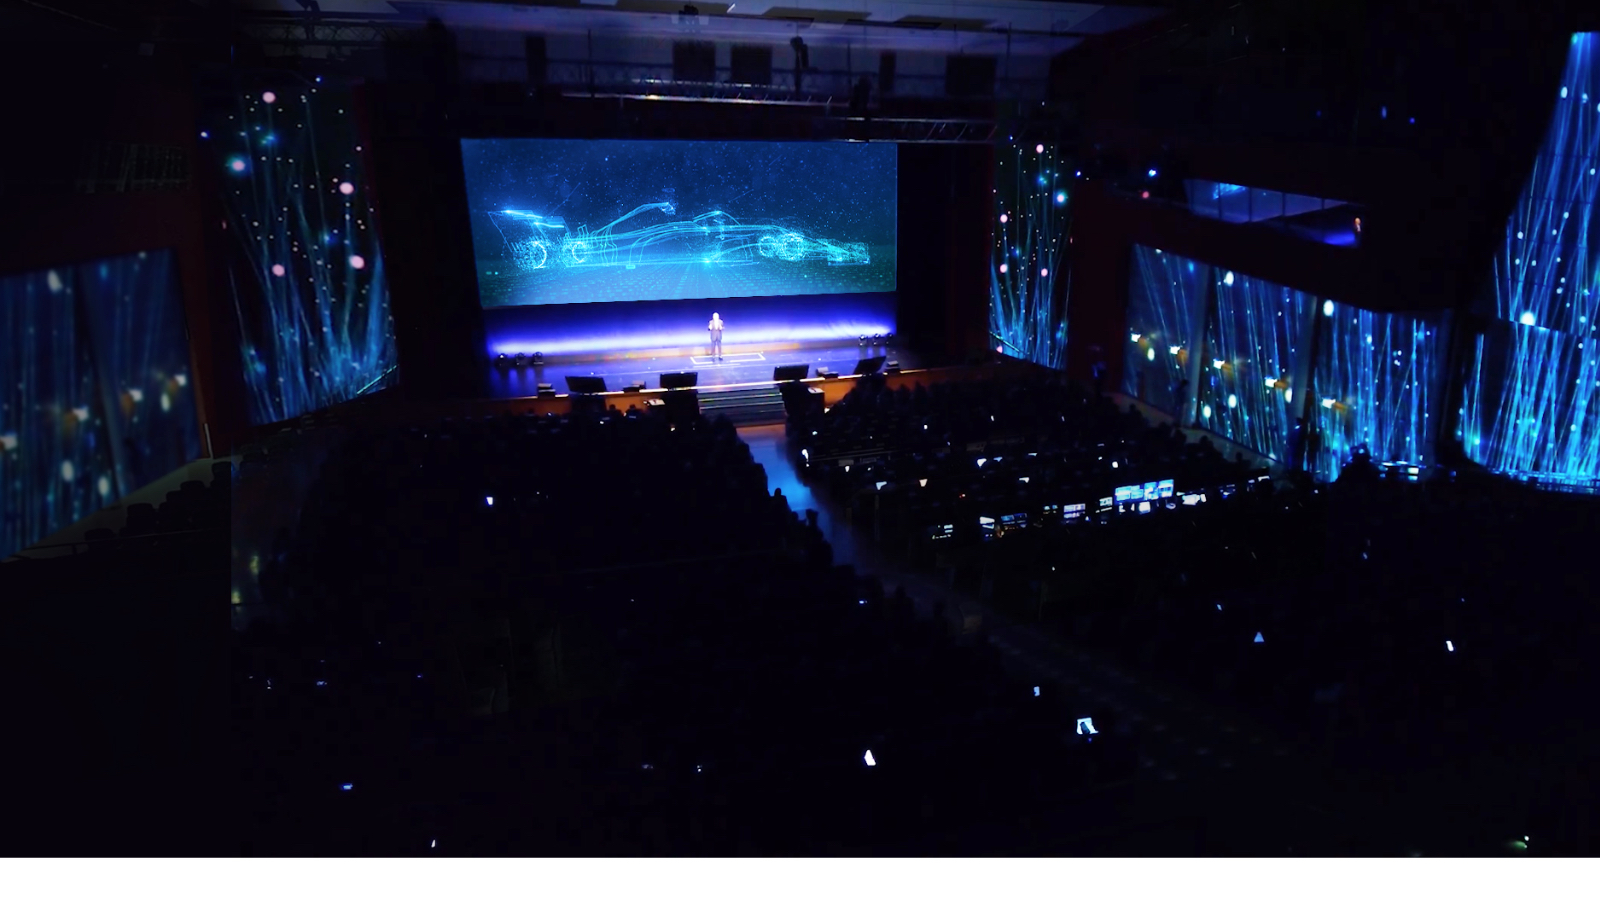 HPE Discover More Munich auditorium, audience and digital projection